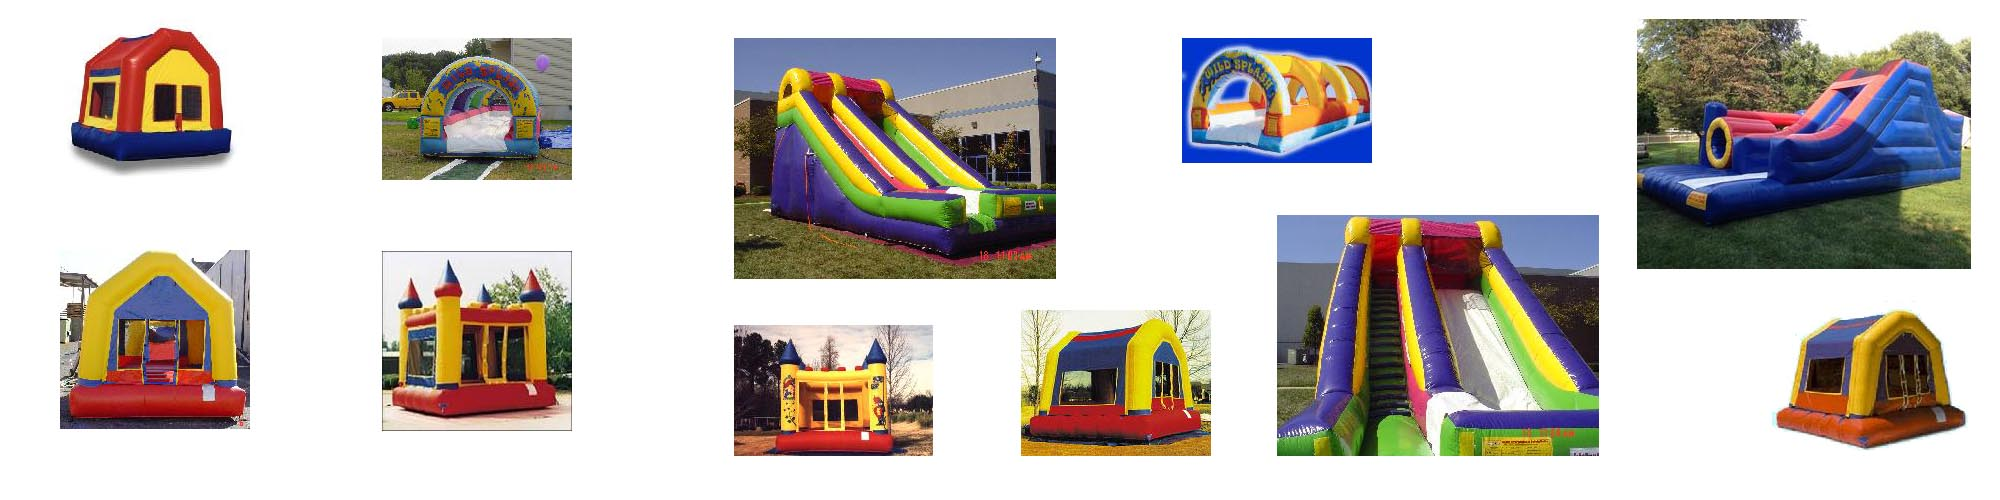 Bounce House Rentals in Baltimore, MD | Party Palace Rentals, LLC. | Inflatables& Games